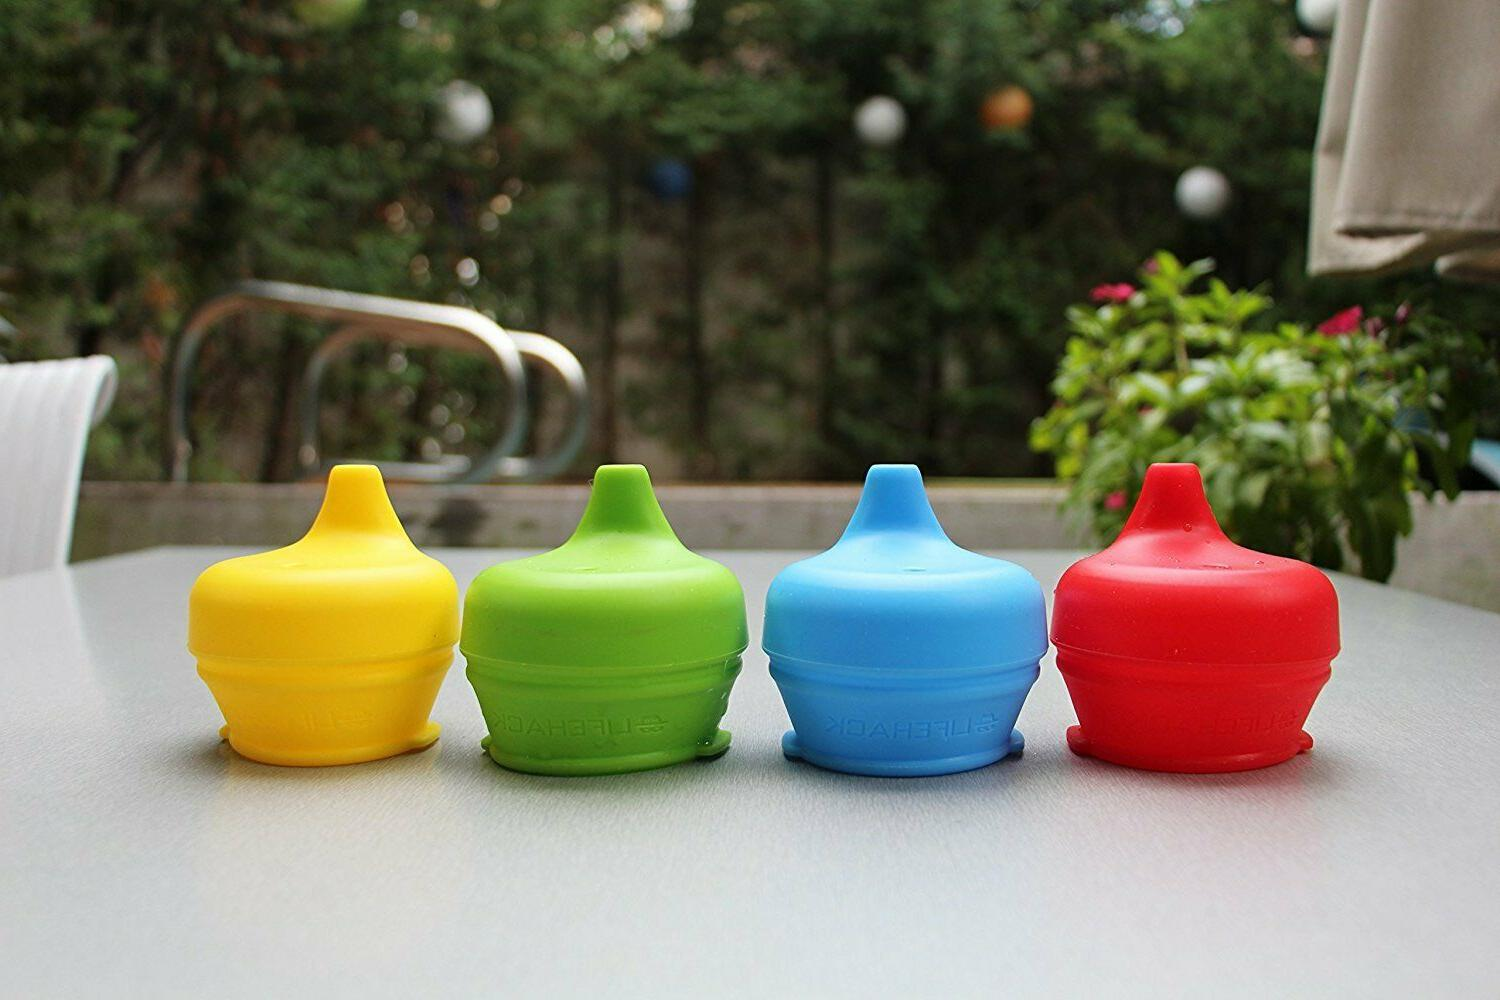 Sippy Cup Lids MrLifeHack 4pk Any Cup Bottle Spill Proof BPA Free